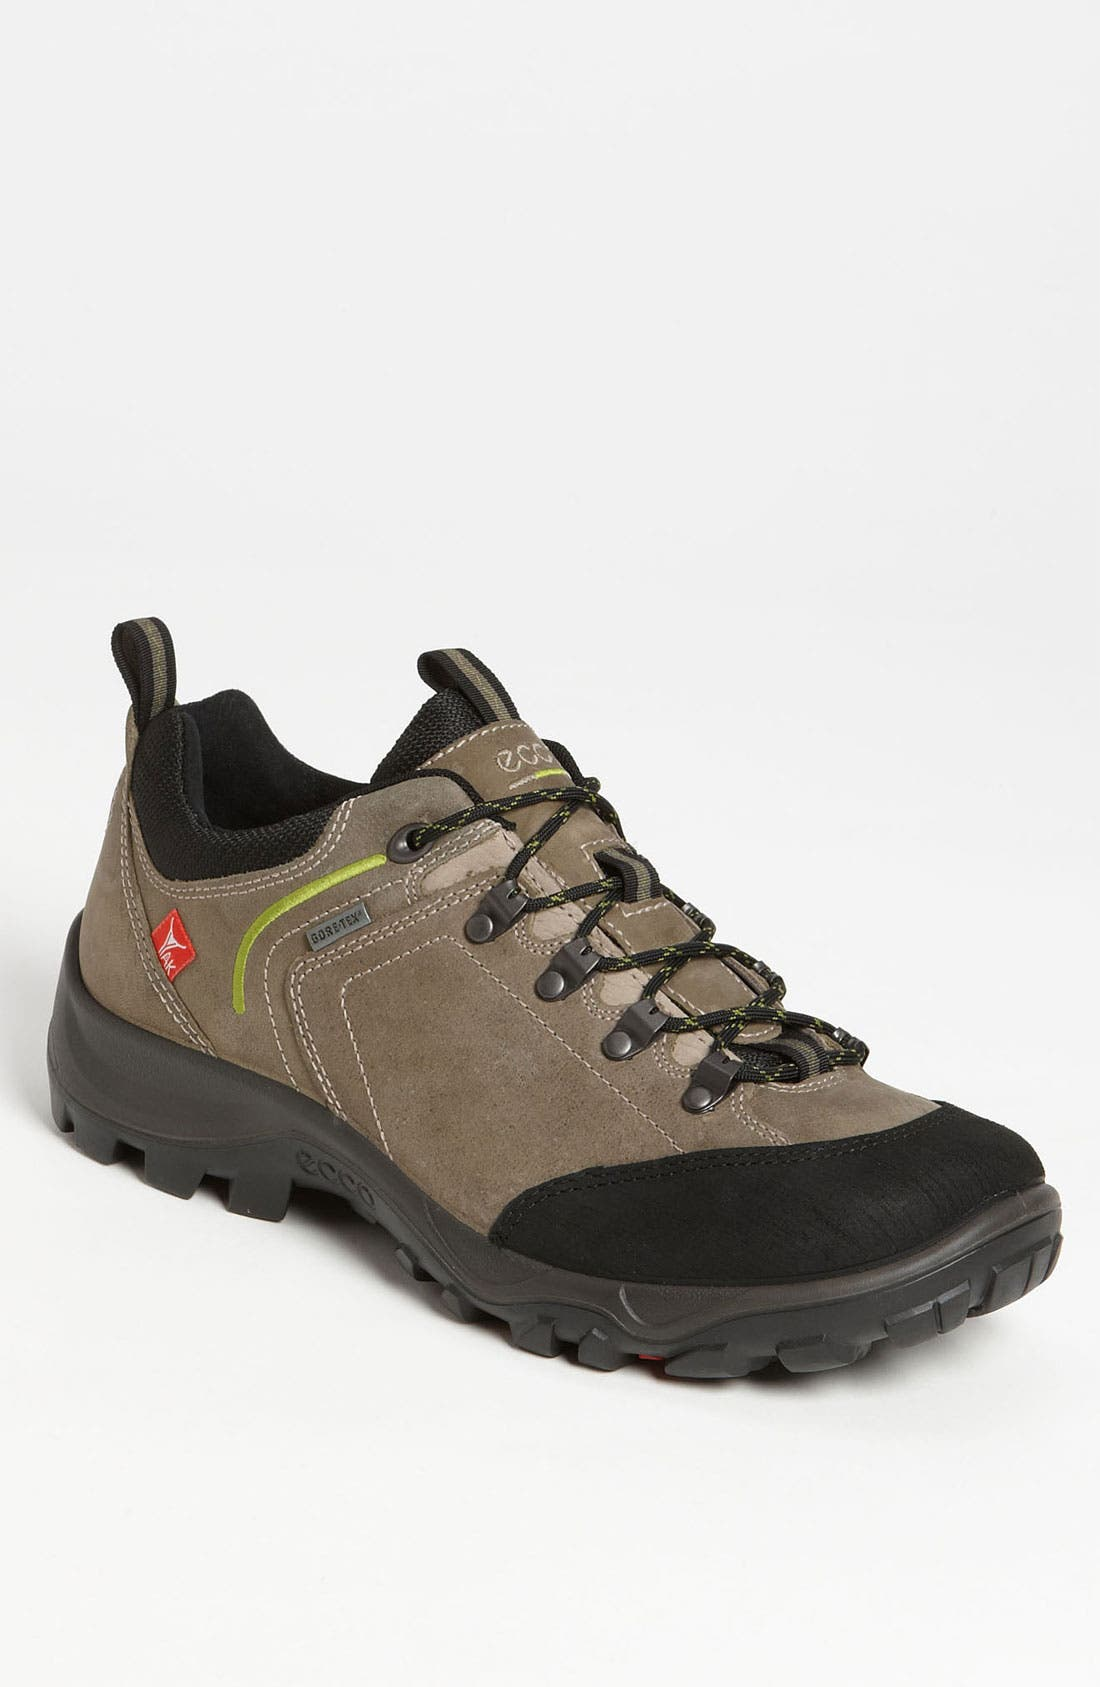 Main Image - ECCO 'Sayan Low II GTX' Hiking Shoe (Men)